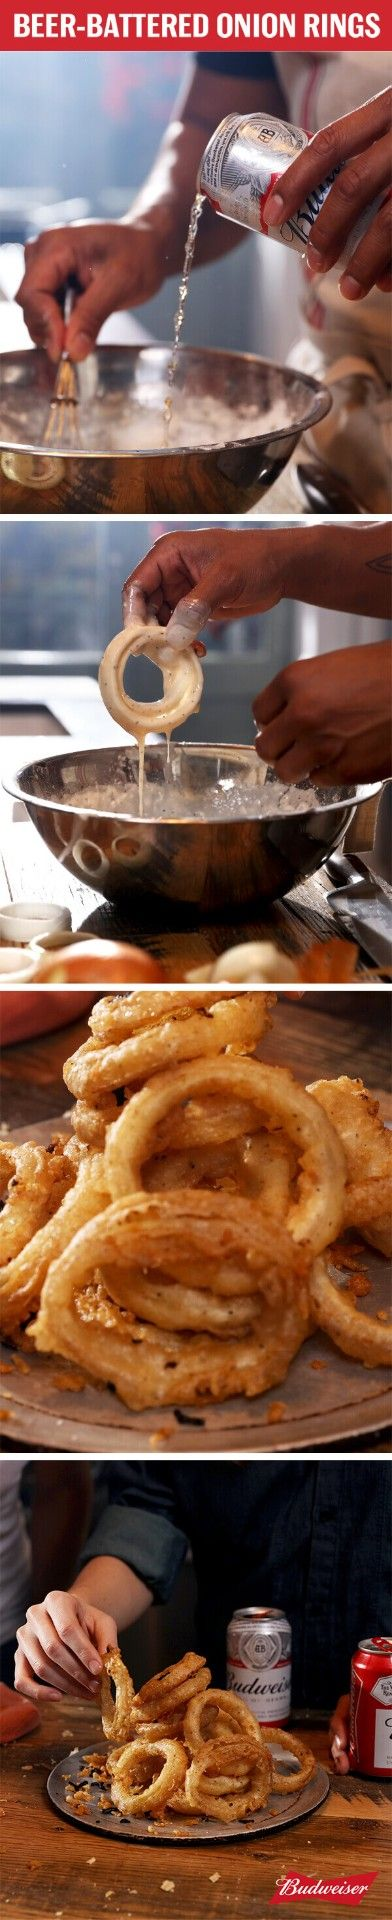 This recipe for Beer-Battered Onion Rings with Budweiser is next level. Batter them, fry them, and serve them up.